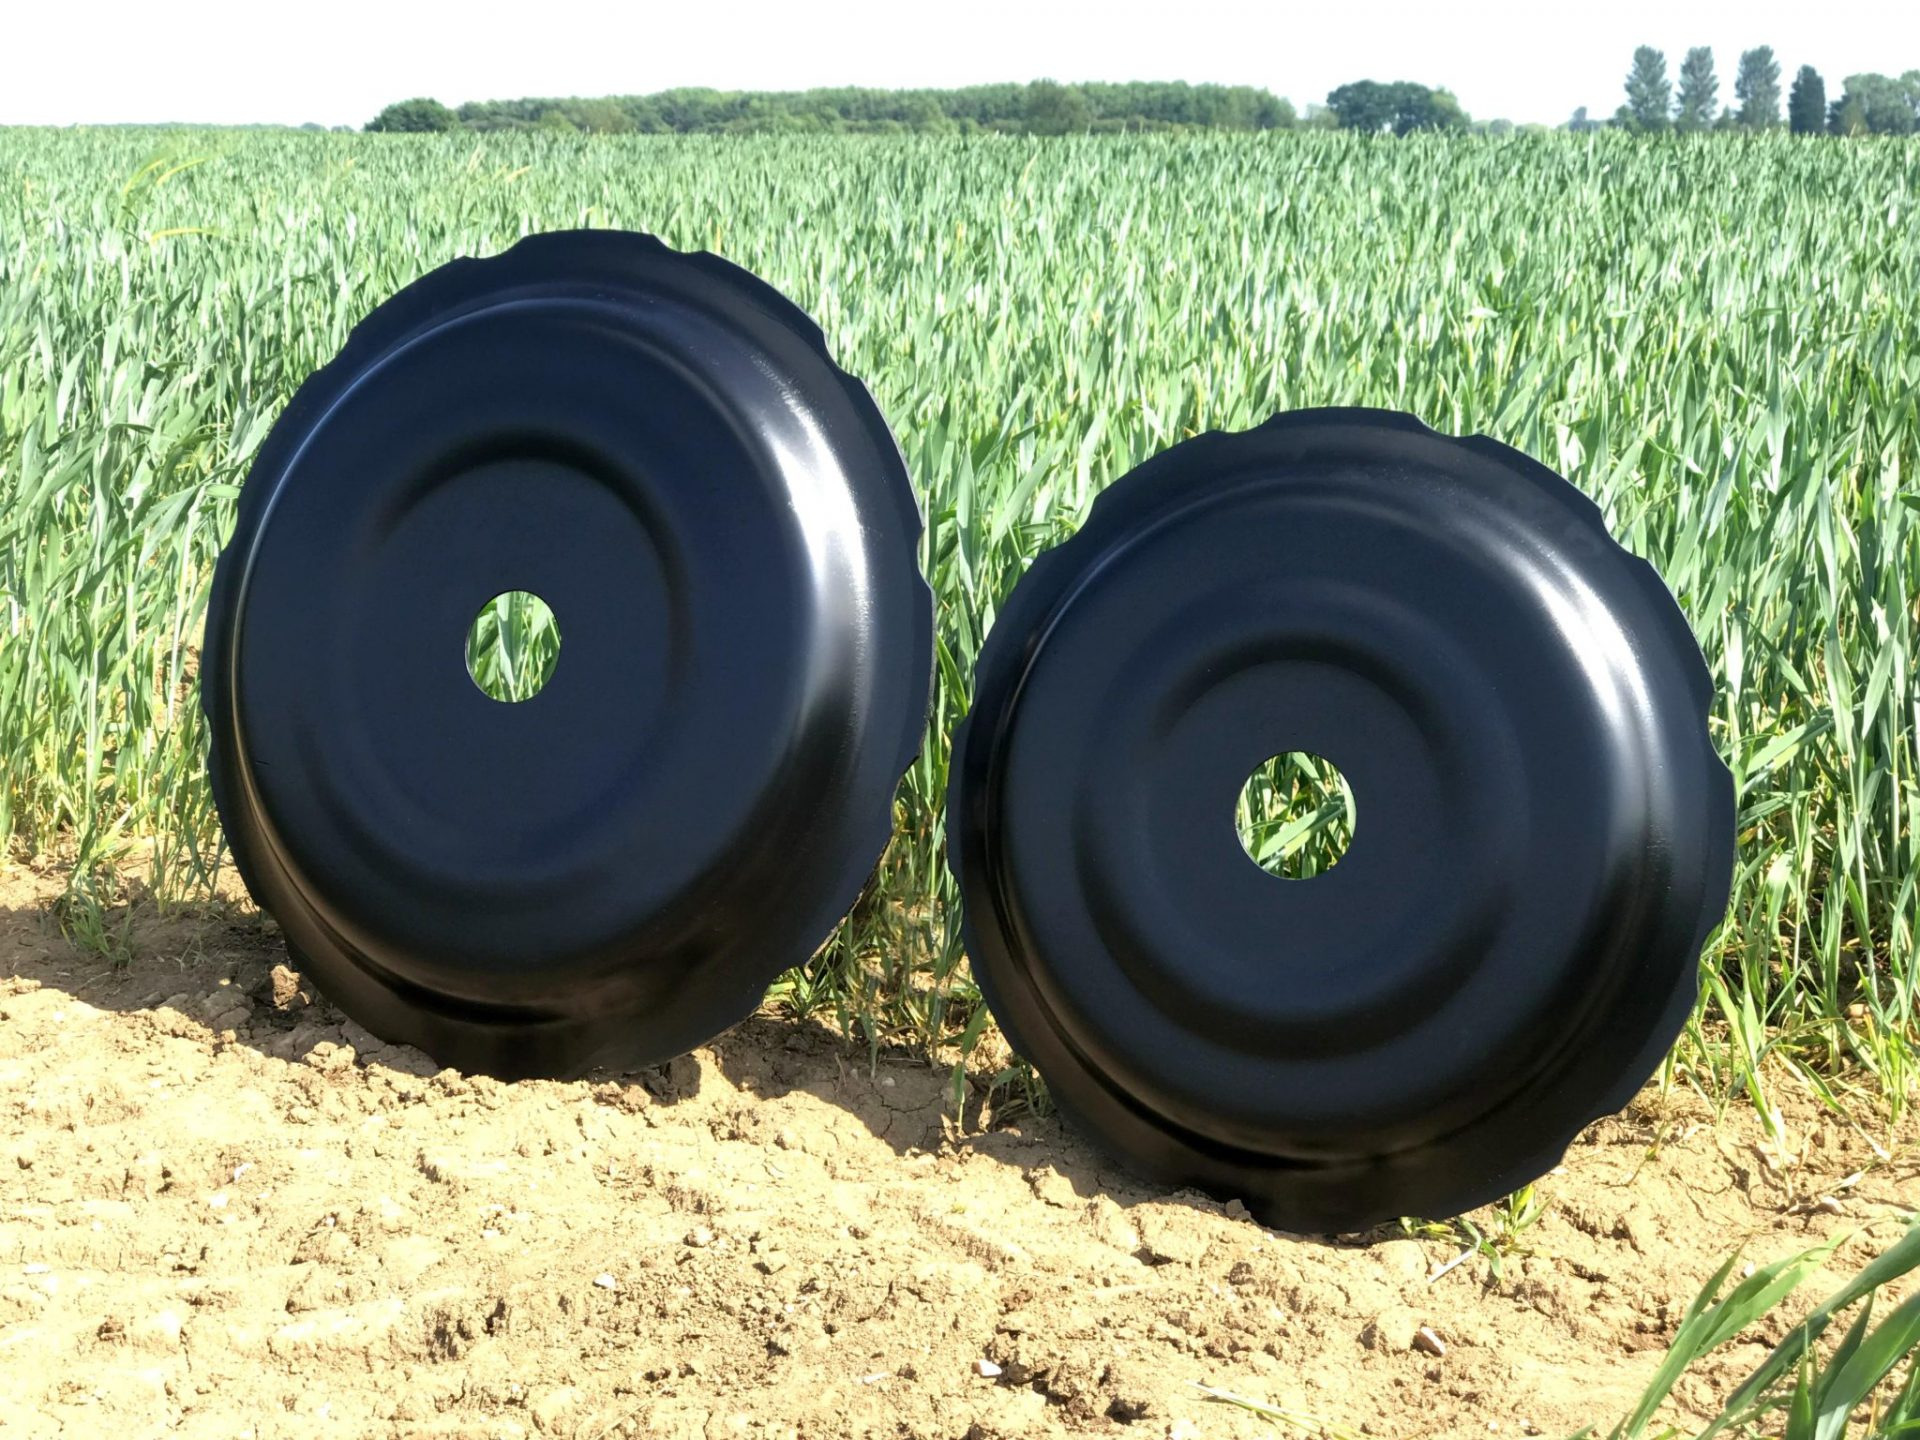 Double Drive Ring (DDR) from Agricast improves on the Double Disc ring